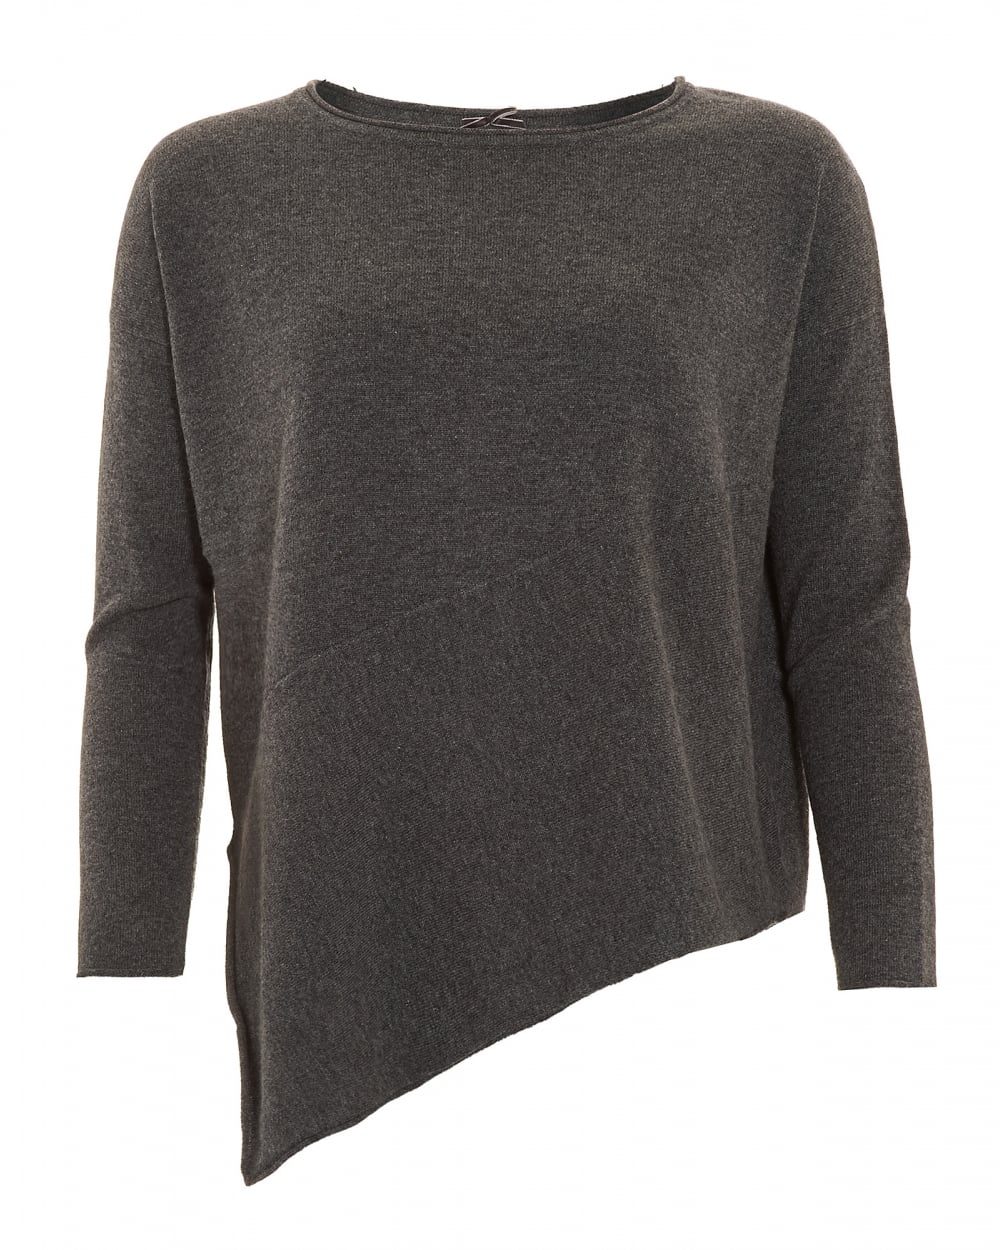 Cocoa Cashmere Womens Jumper, Asymmetrical Cut Charcoal Grey Sweater